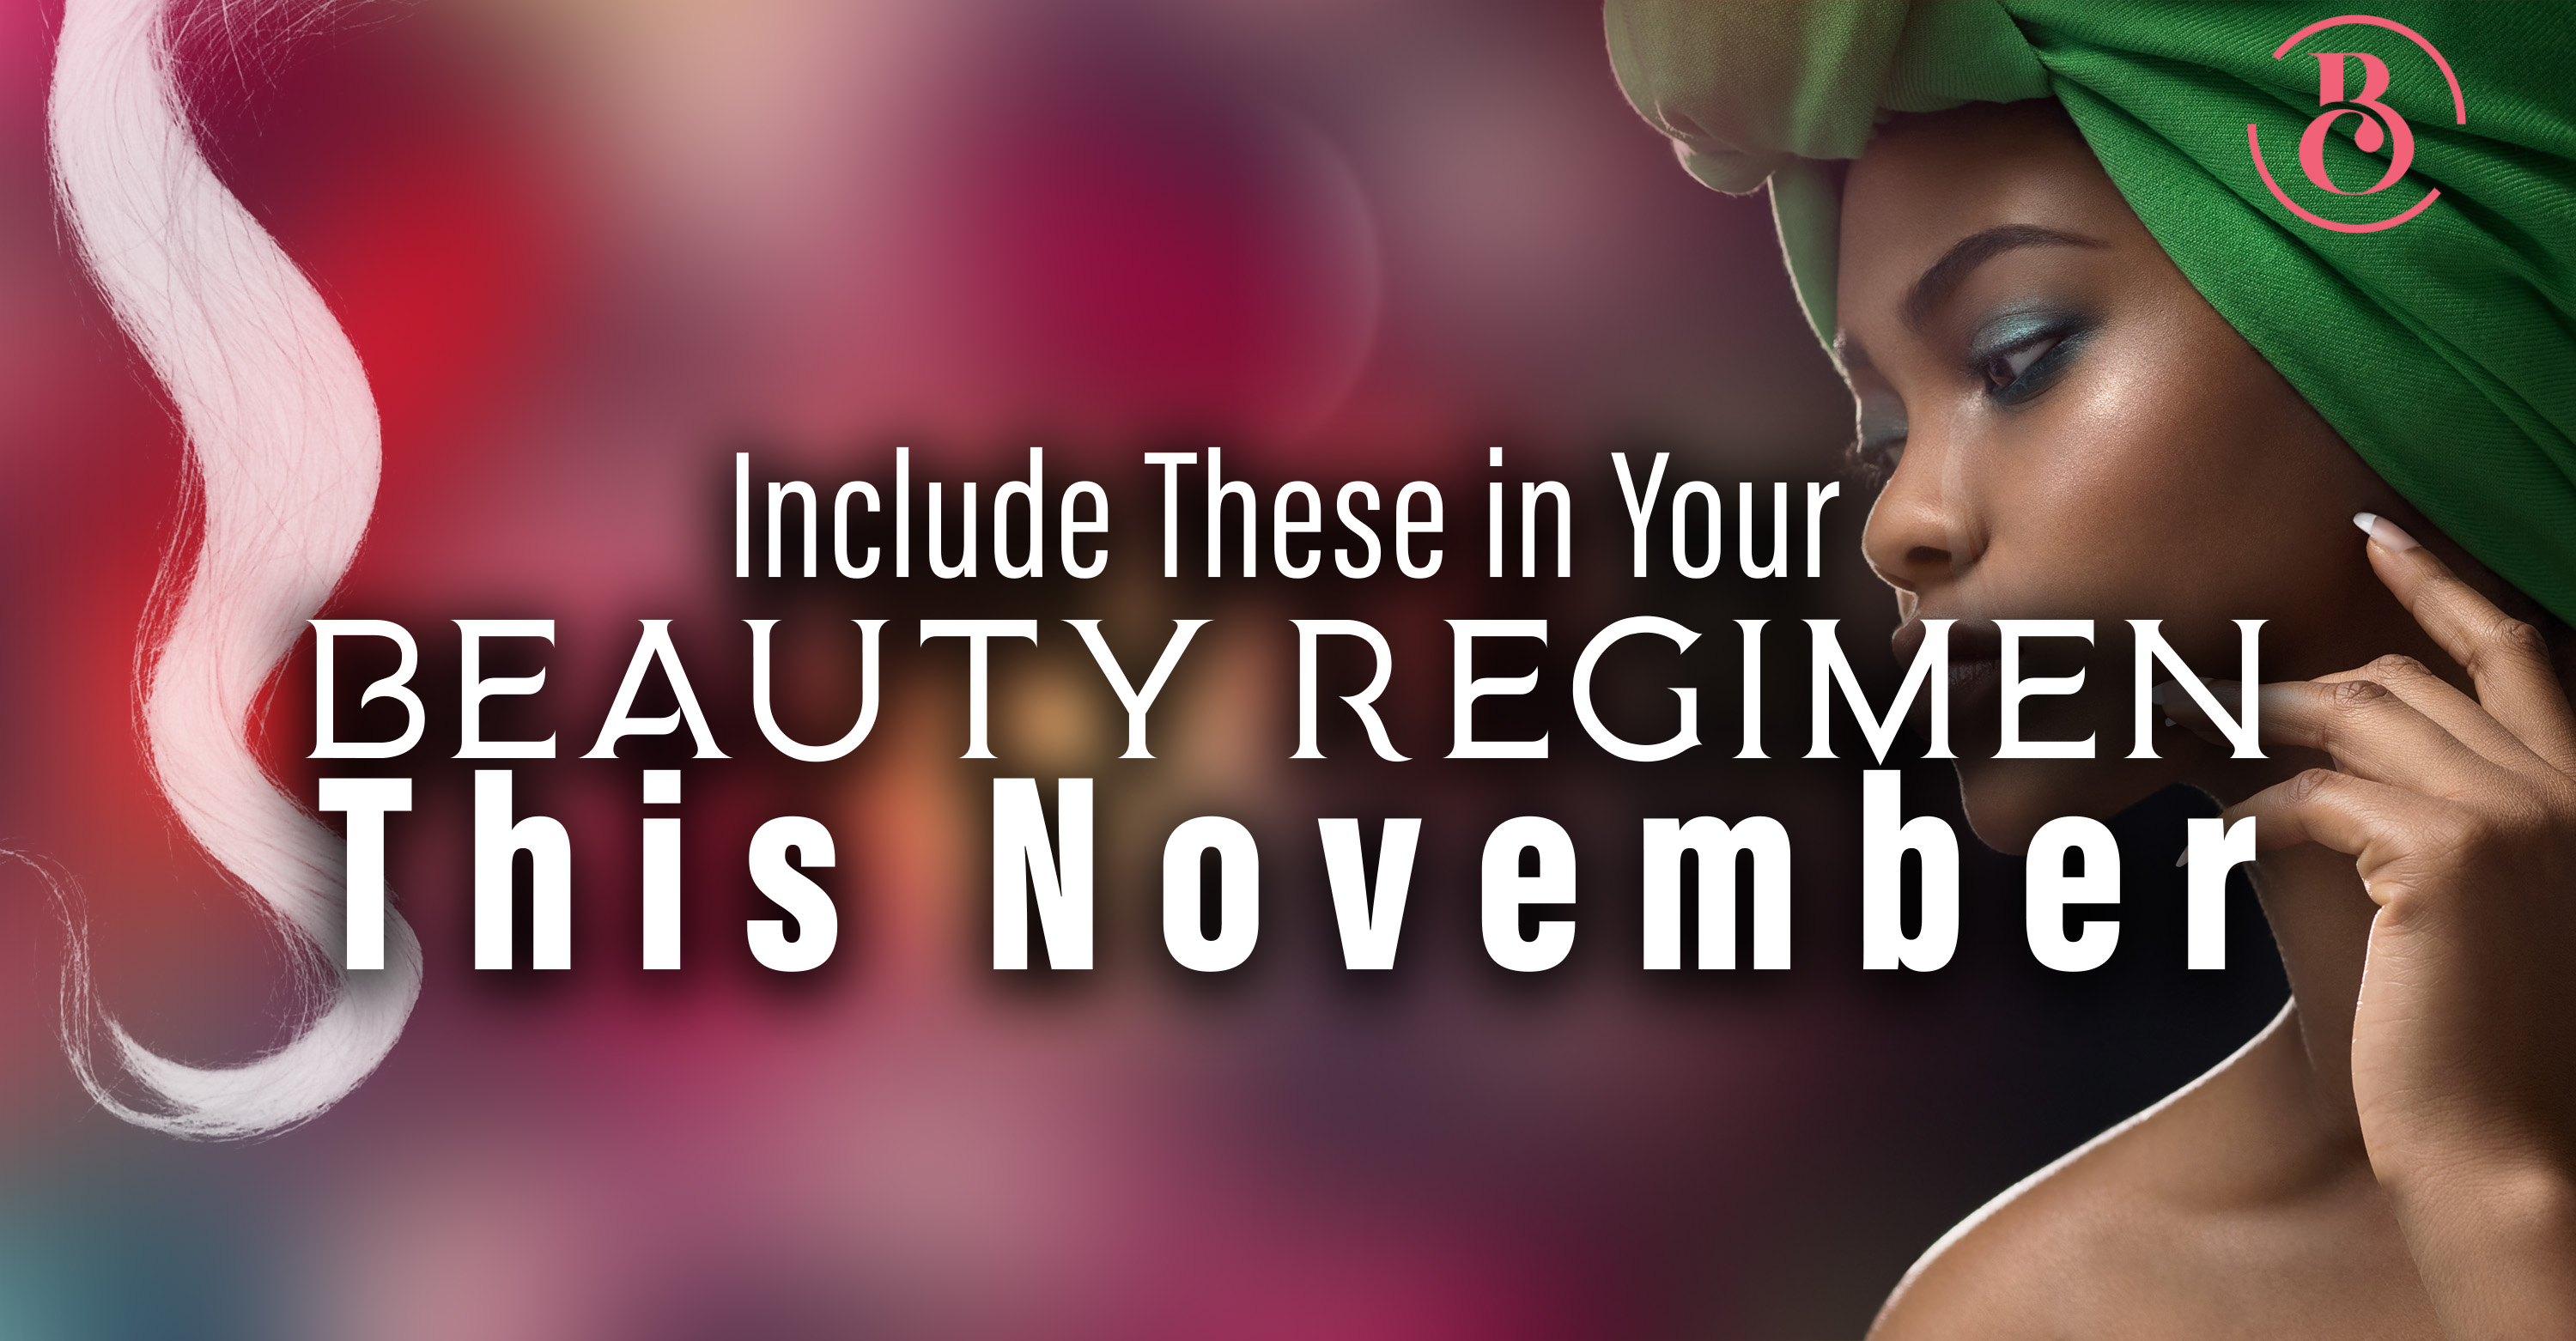 7 Things to Include in Your Beauty Regimen This November